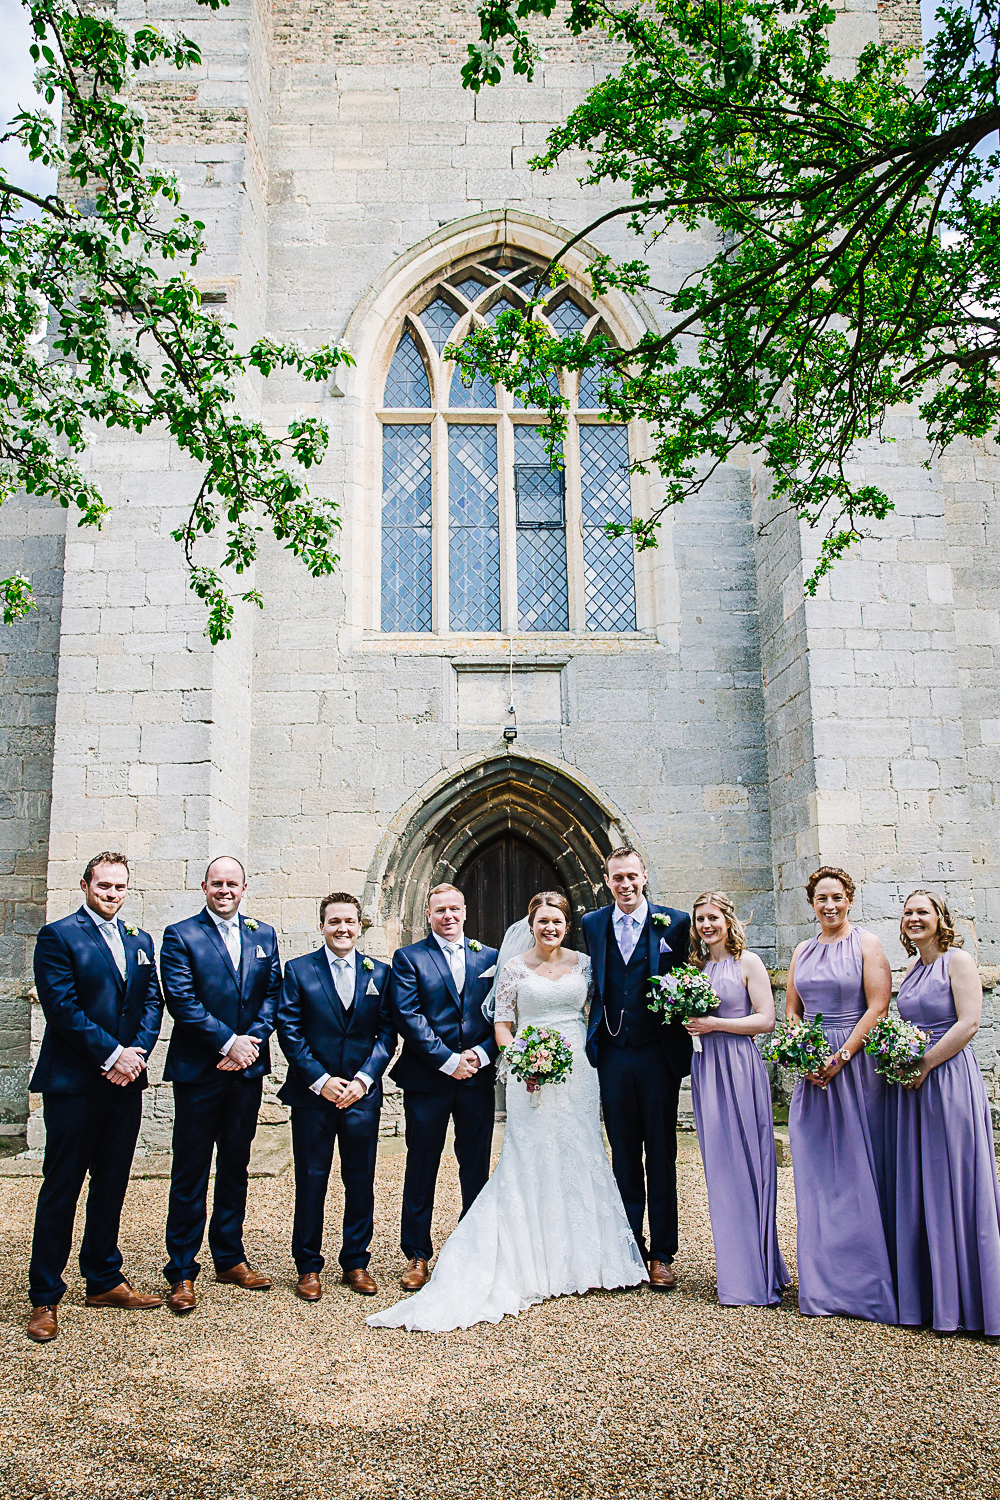 Wedding Party at Cottenham All Saint's Church - Swynford Manor Wedding Photographer